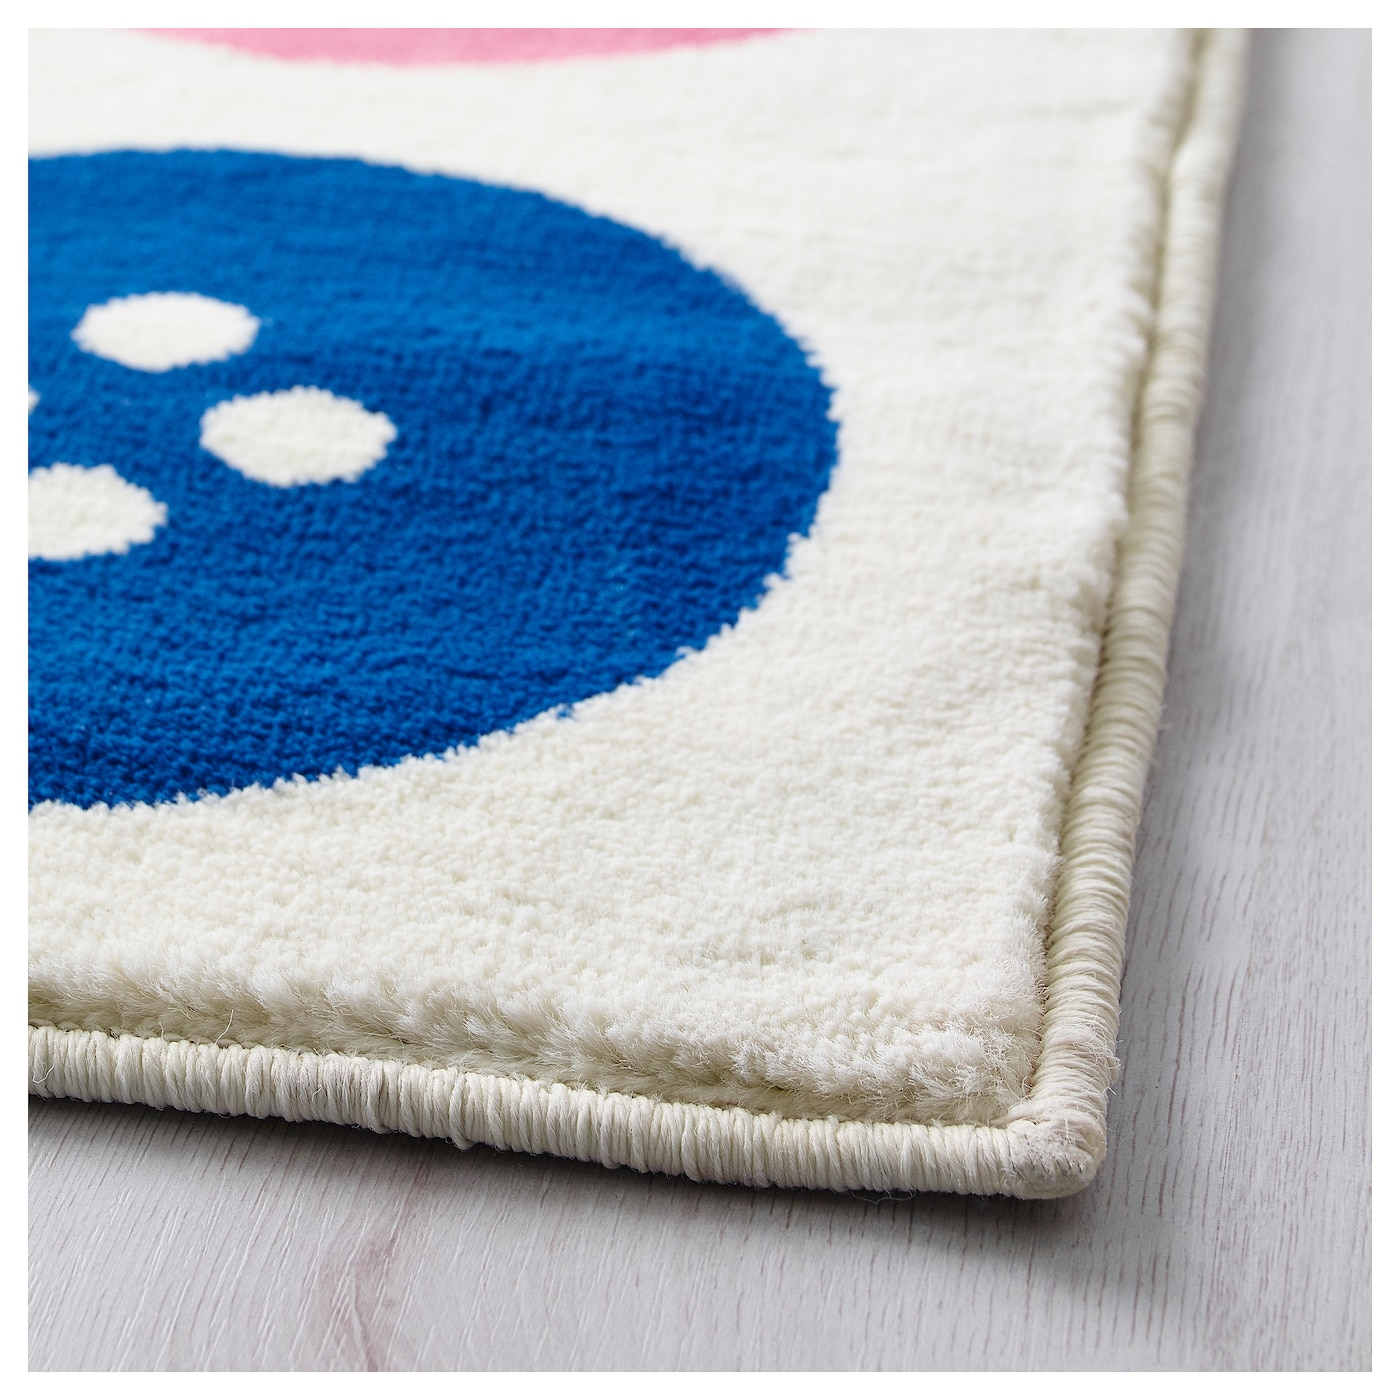 IKEA TÅSTRUP rug, low pile The thick pile dampens sound and provides a soft surface to walk on.